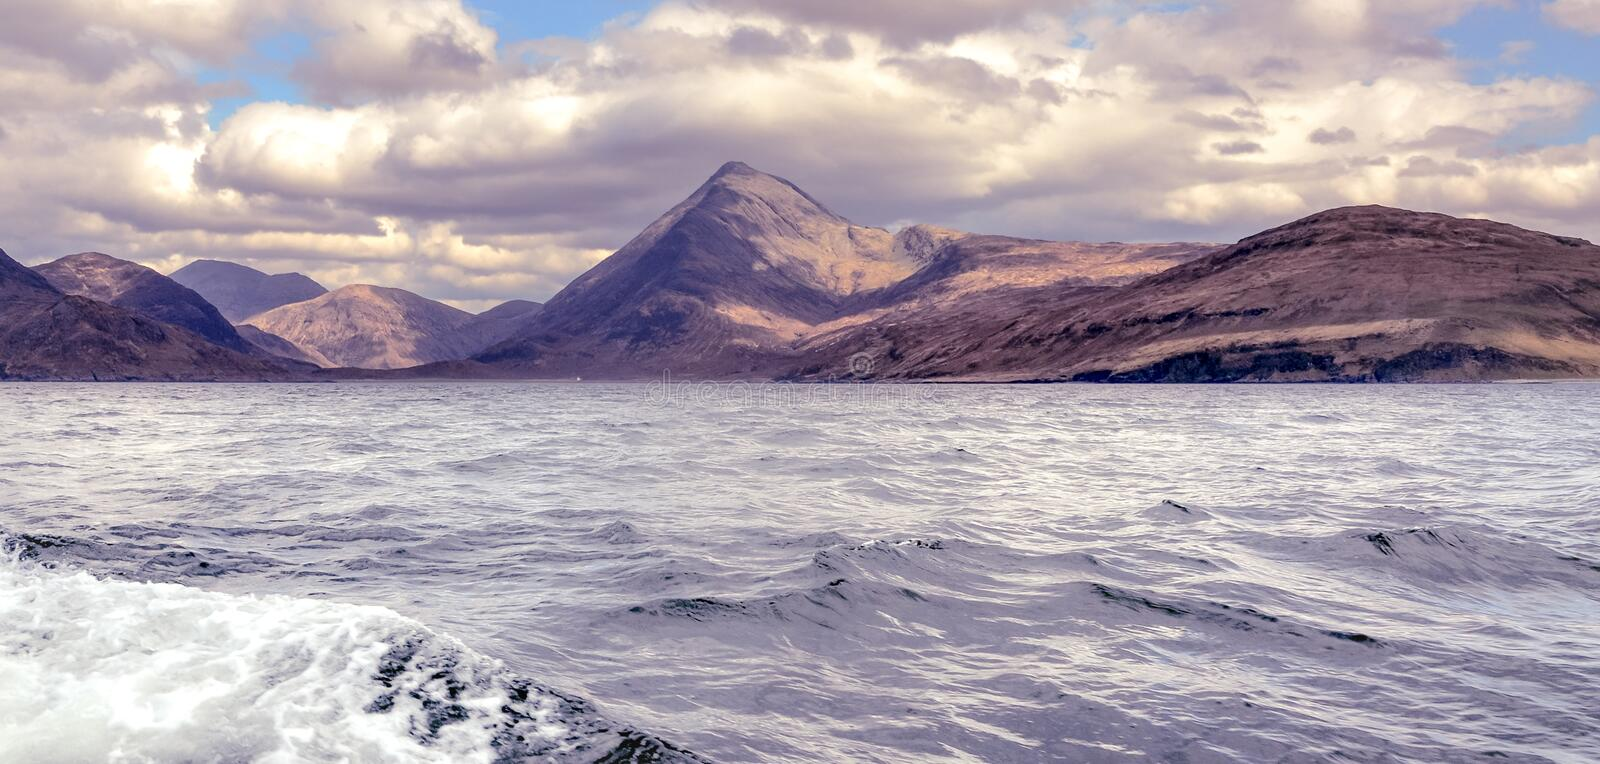 Cuillin mountain range seen from the boat - Isle of Skye royalty free stock image